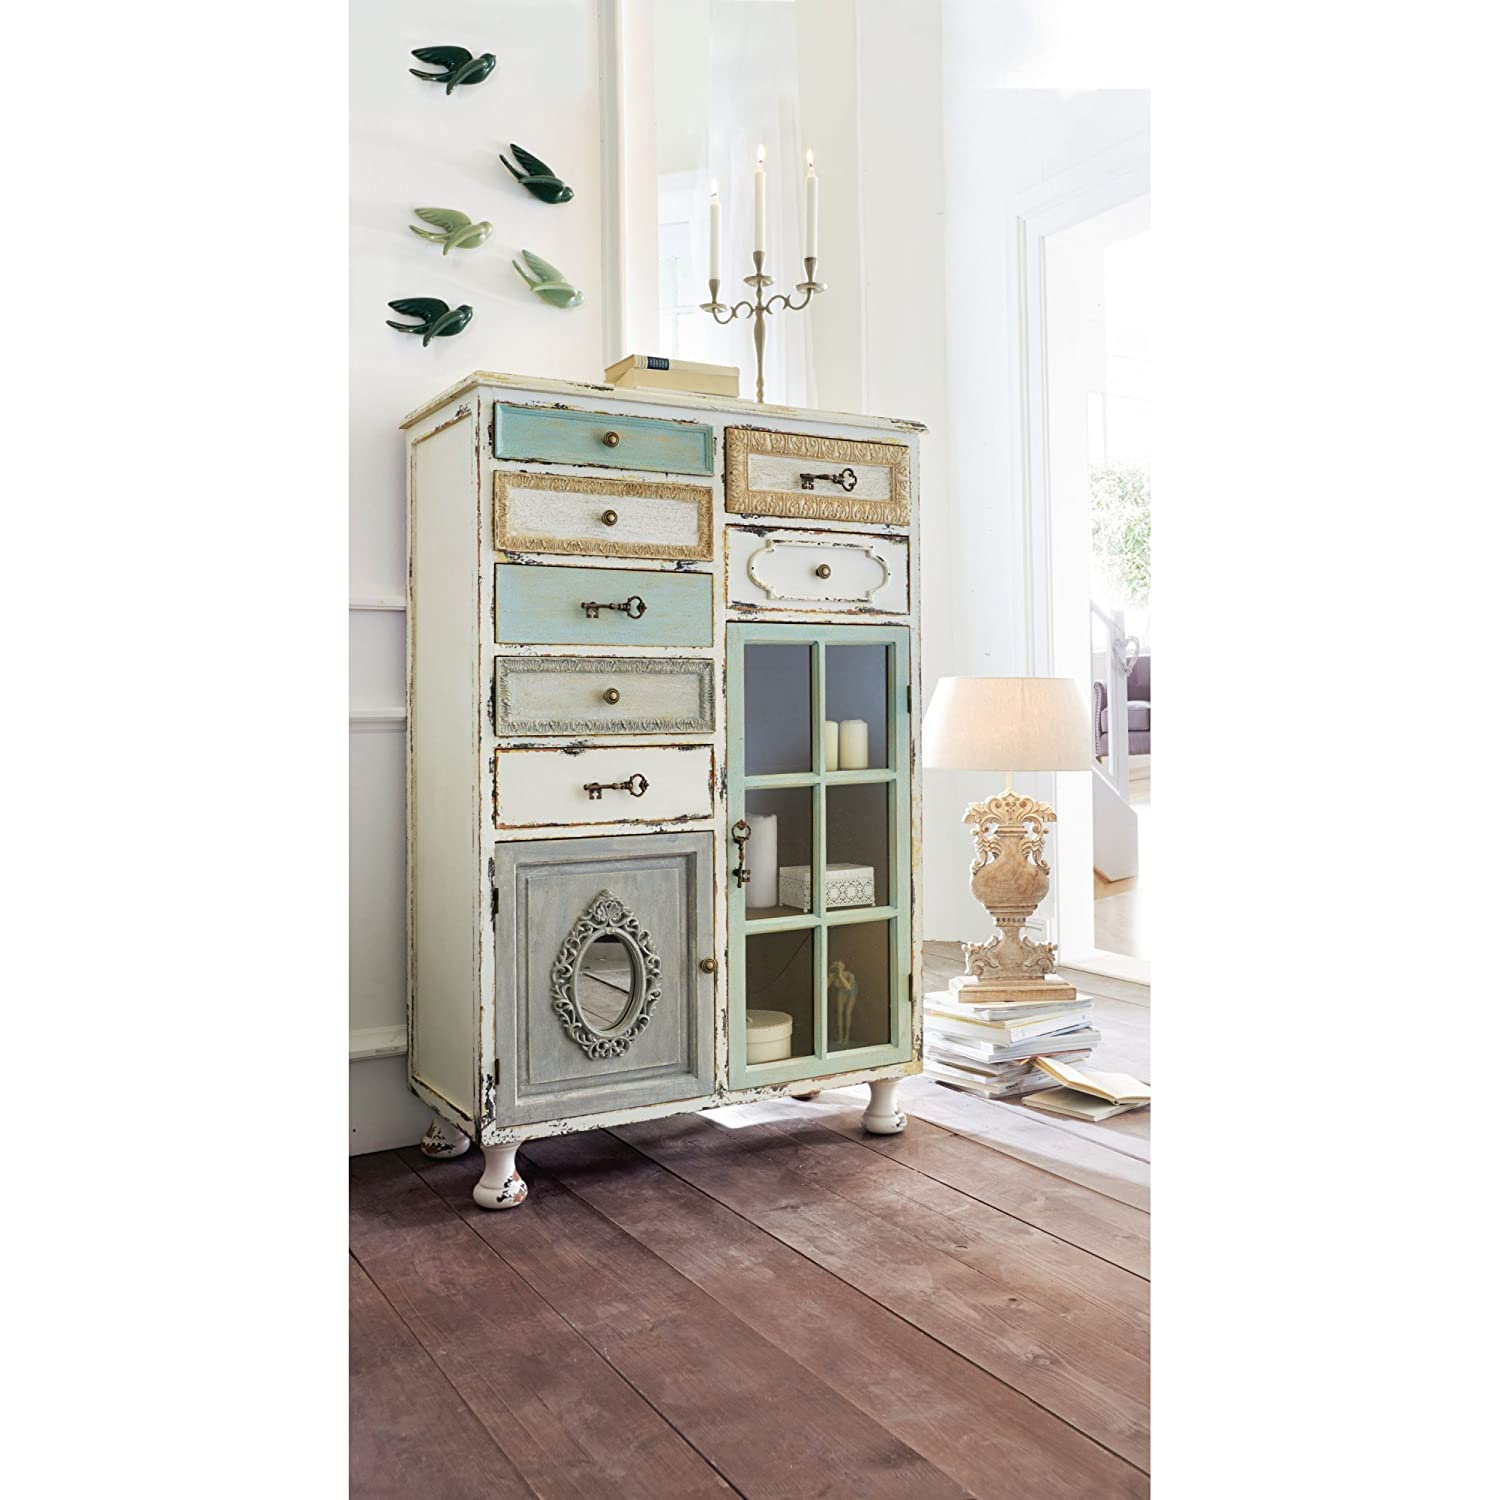 miavilla schrank shabby chic 7 schubladen glast r vintage wei mintgr n beige 136 5 x 91 5 x 42. Black Bedroom Furniture Sets. Home Design Ideas